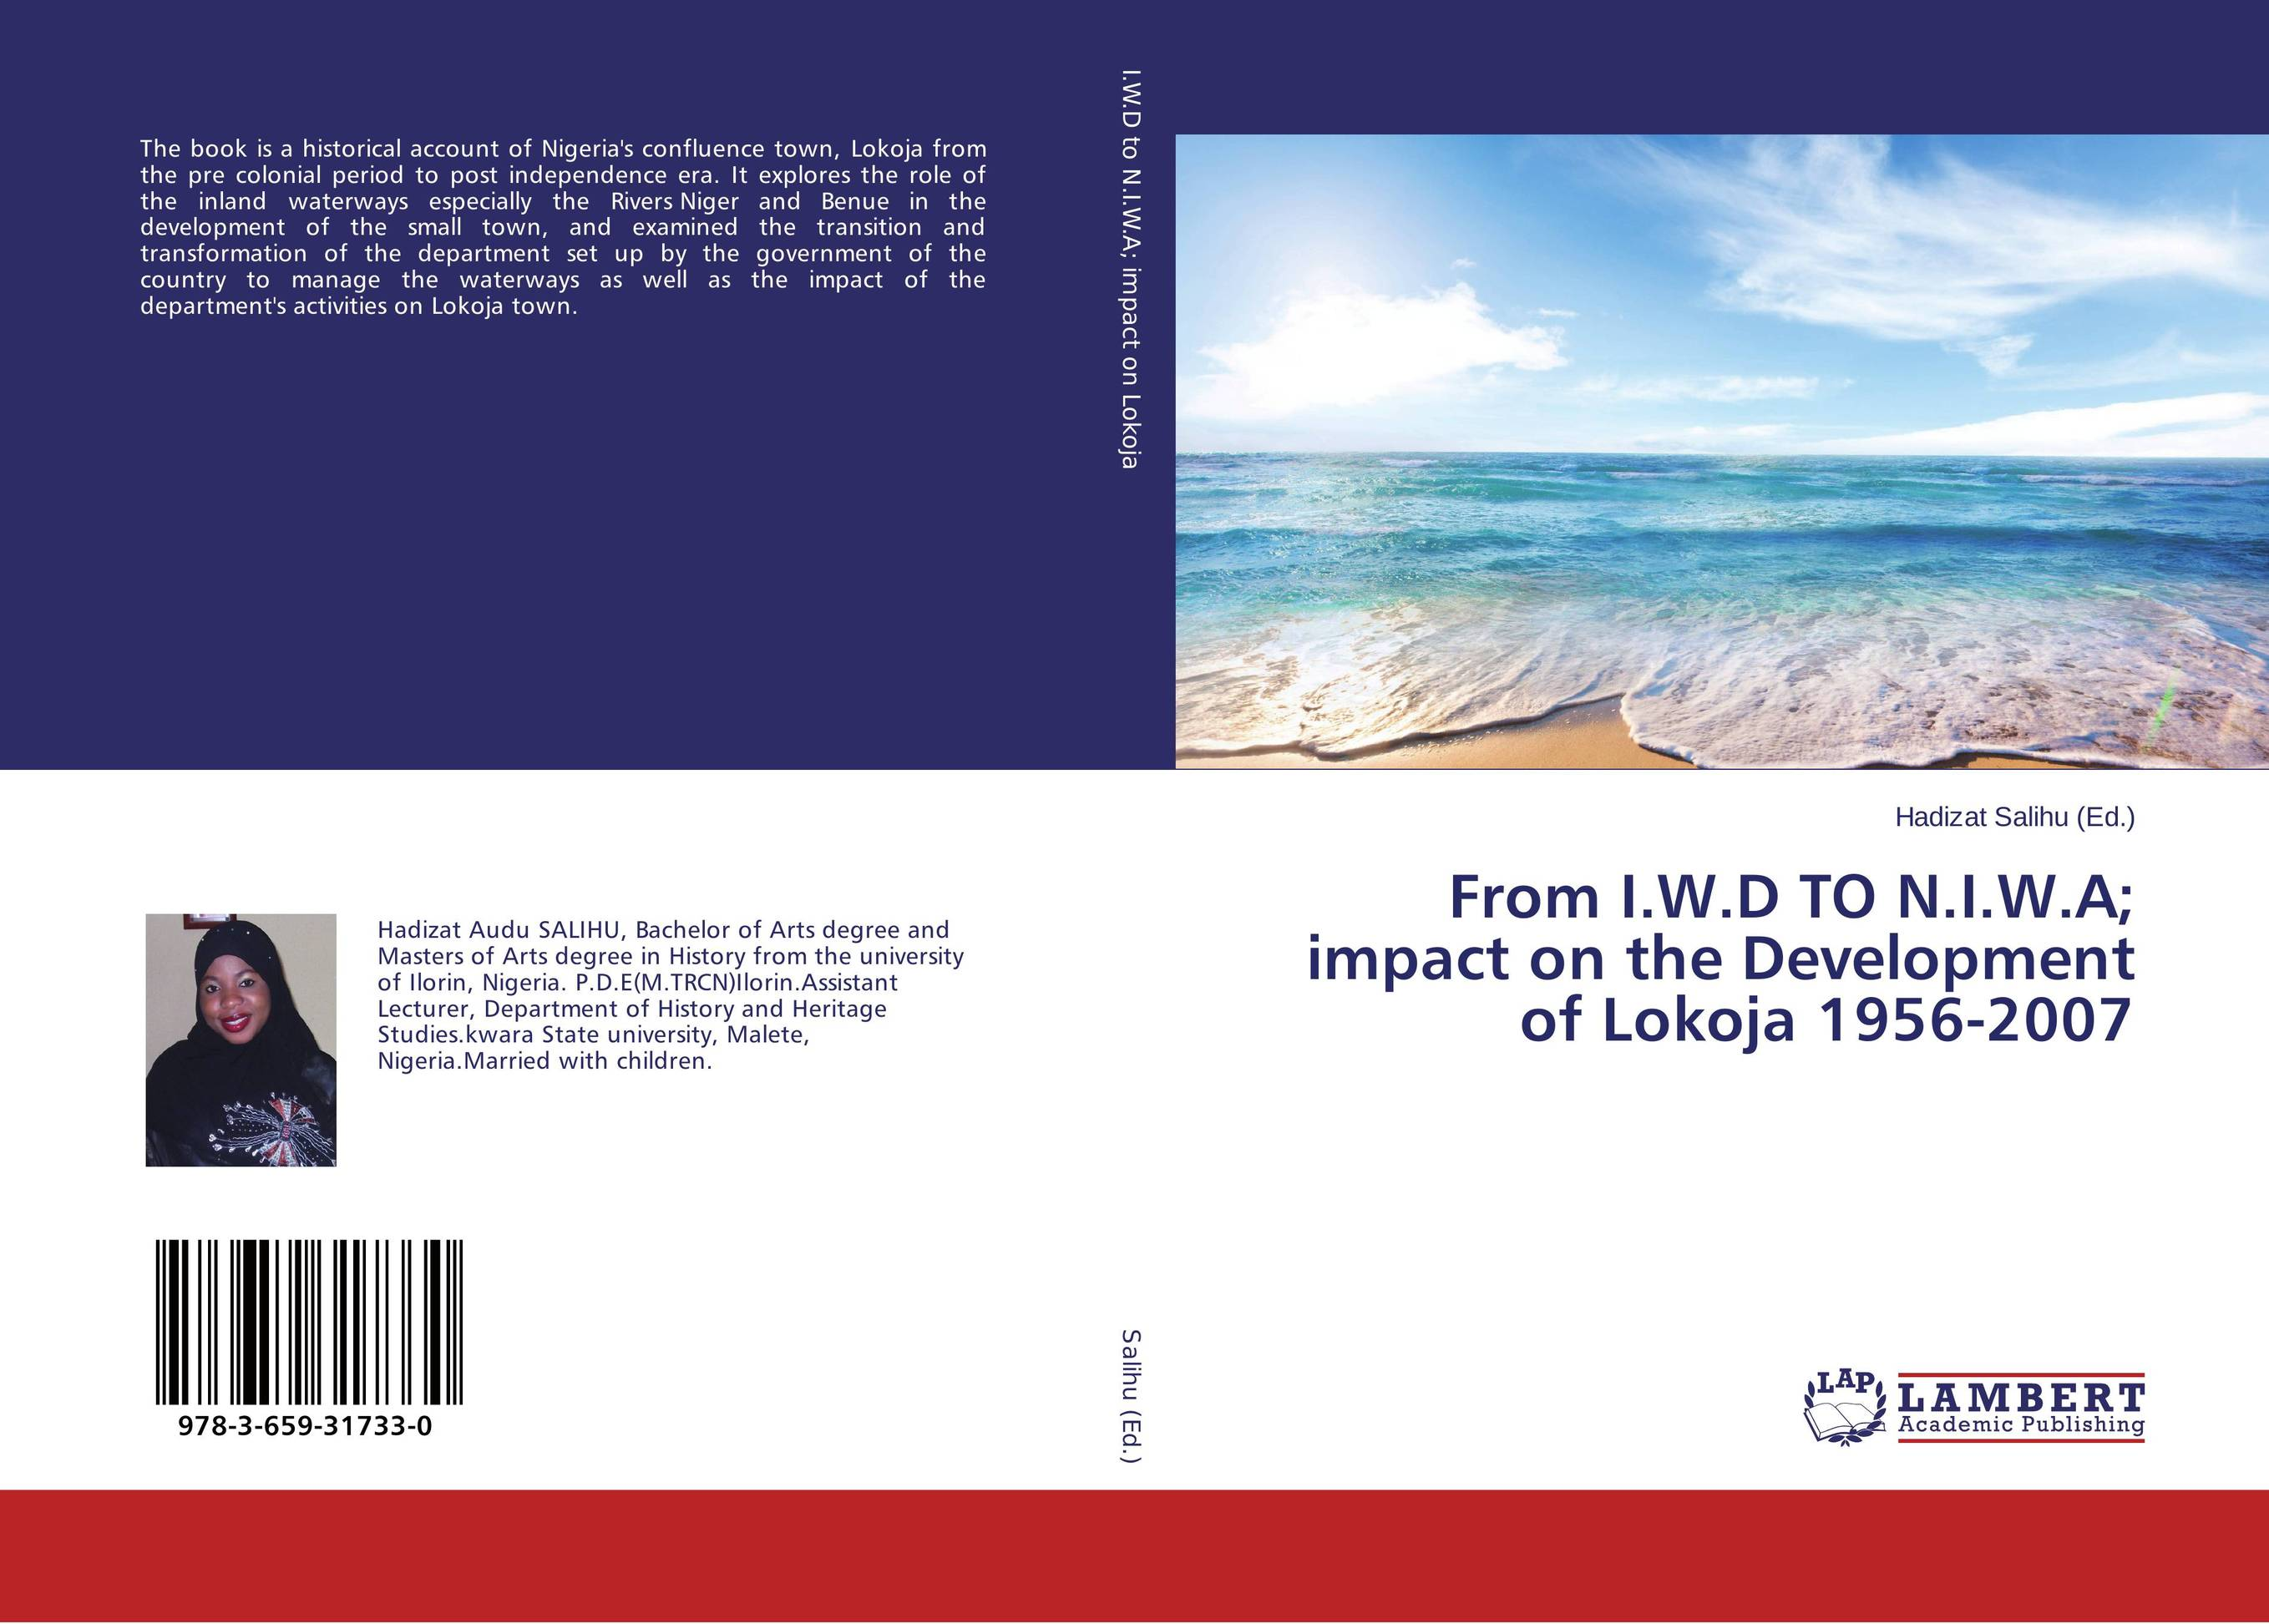 From I.W.D TO N.I.W.A; impact on the Development of Lokoja 1956-2007 pathways to college the impact of inventive pre collegiate programs